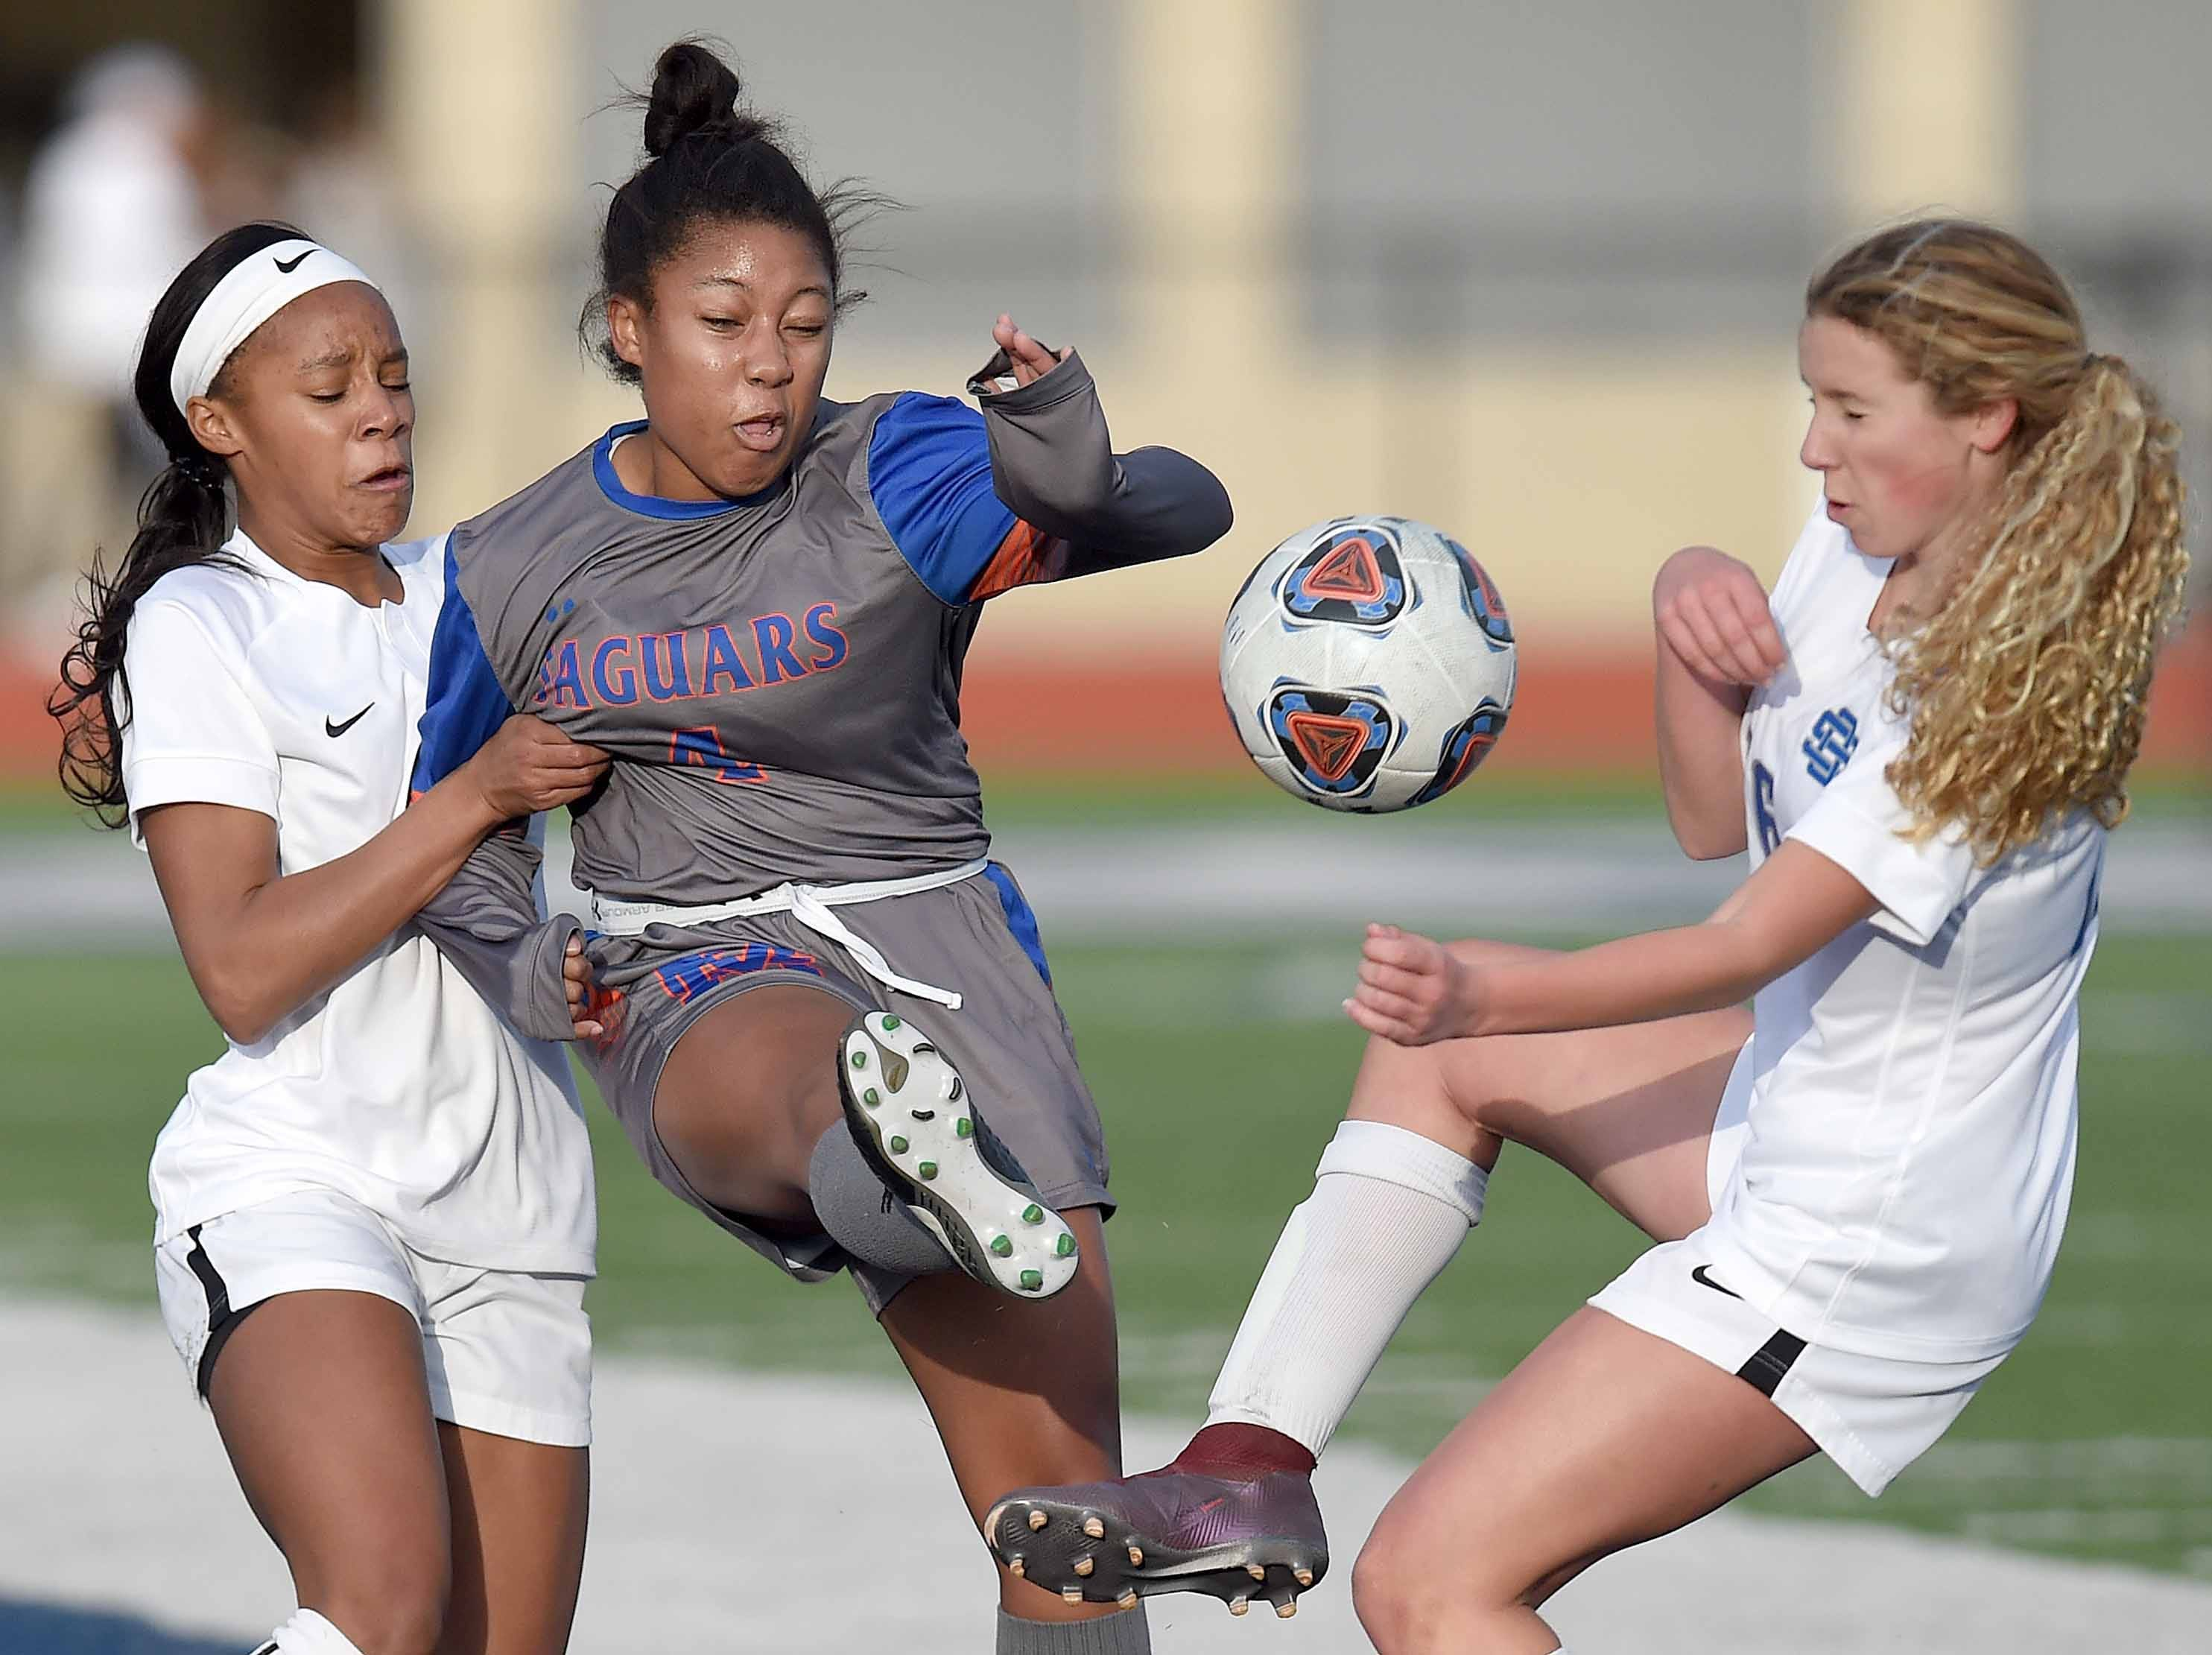 Madison Central's Elaysha Travis (4) clears the ball between two Ocean Springs Lady Greyhounds in the Class 6A state championship in the MHSAA BlueCross Blue Shield of Mississippi Soccer Classic on Saturday, February 9, 2019, at Ridgeland High School in Ridgeland, Miss.